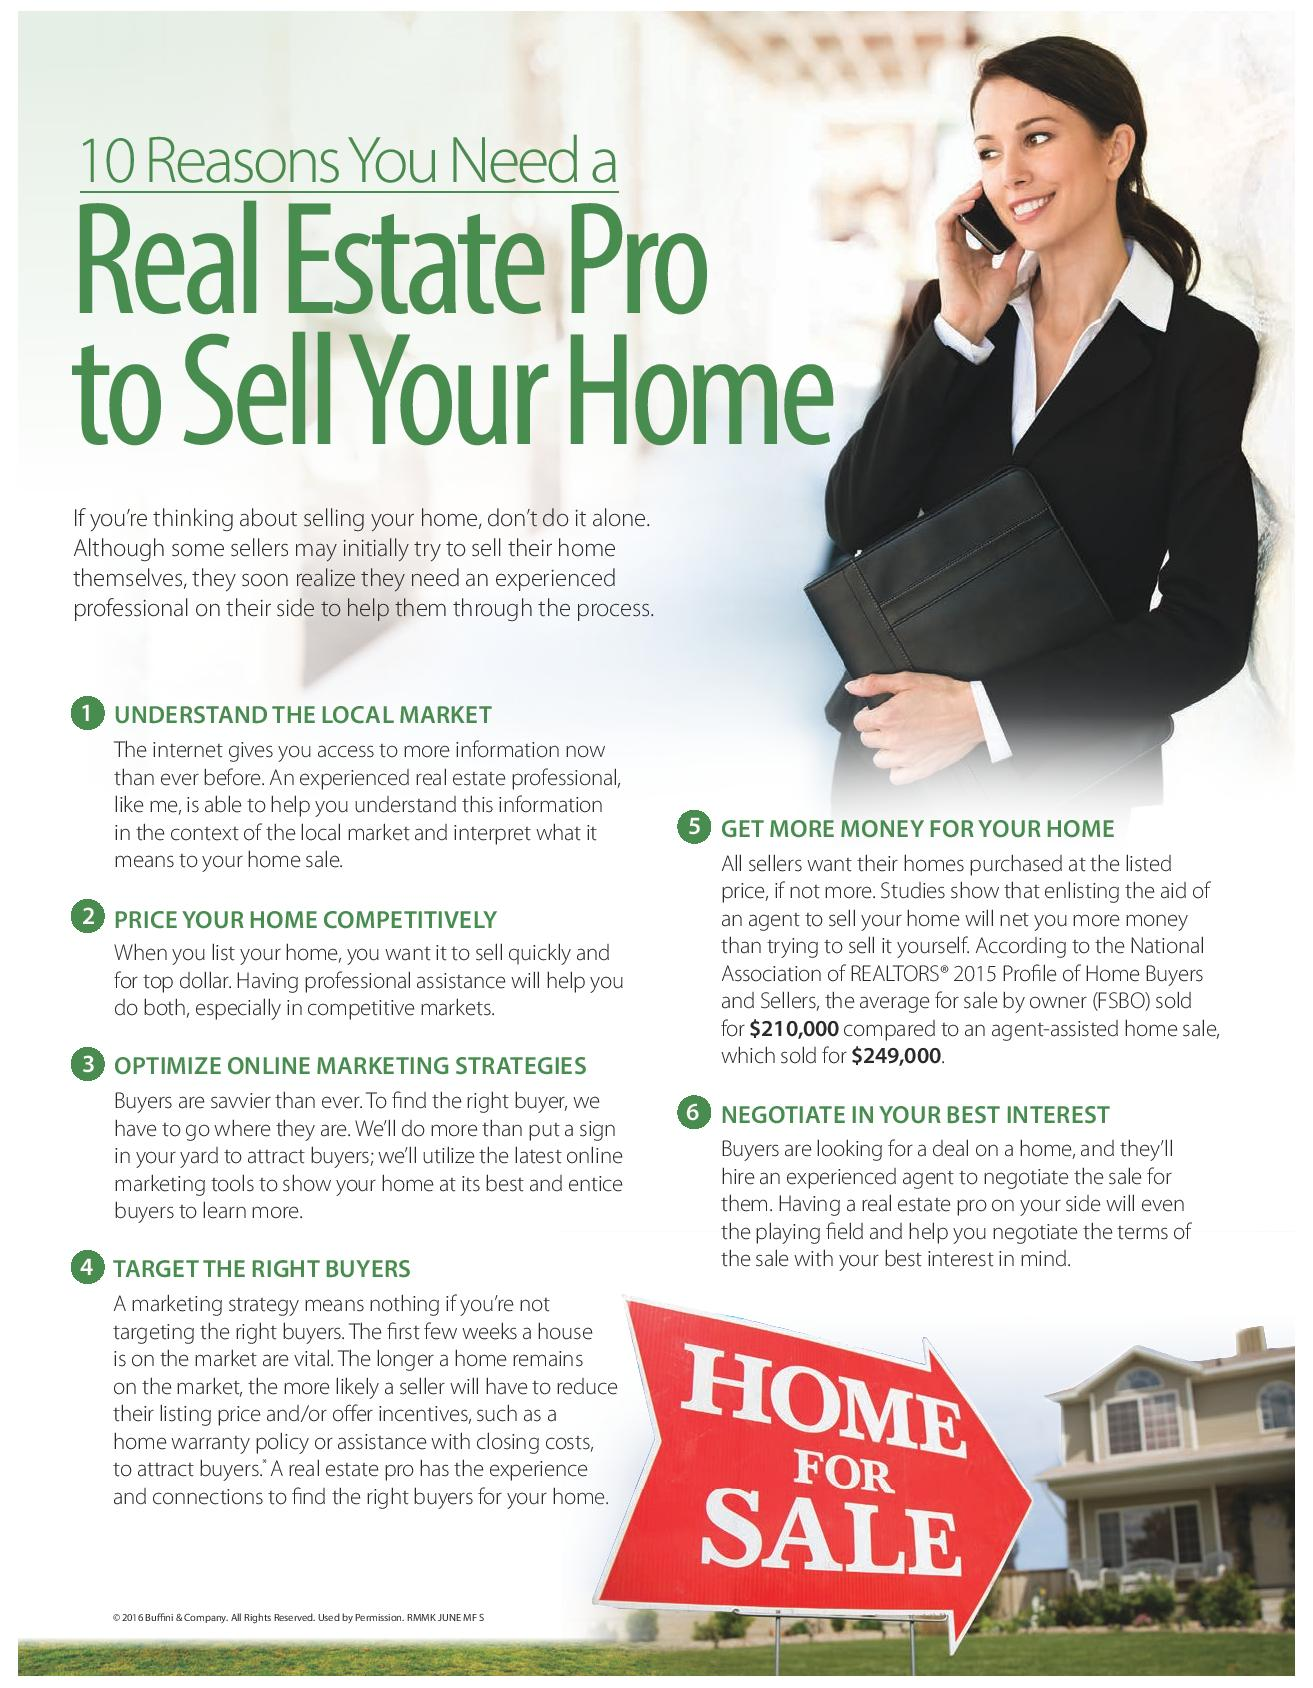 10 reasons you need a real estate pro to sell your home